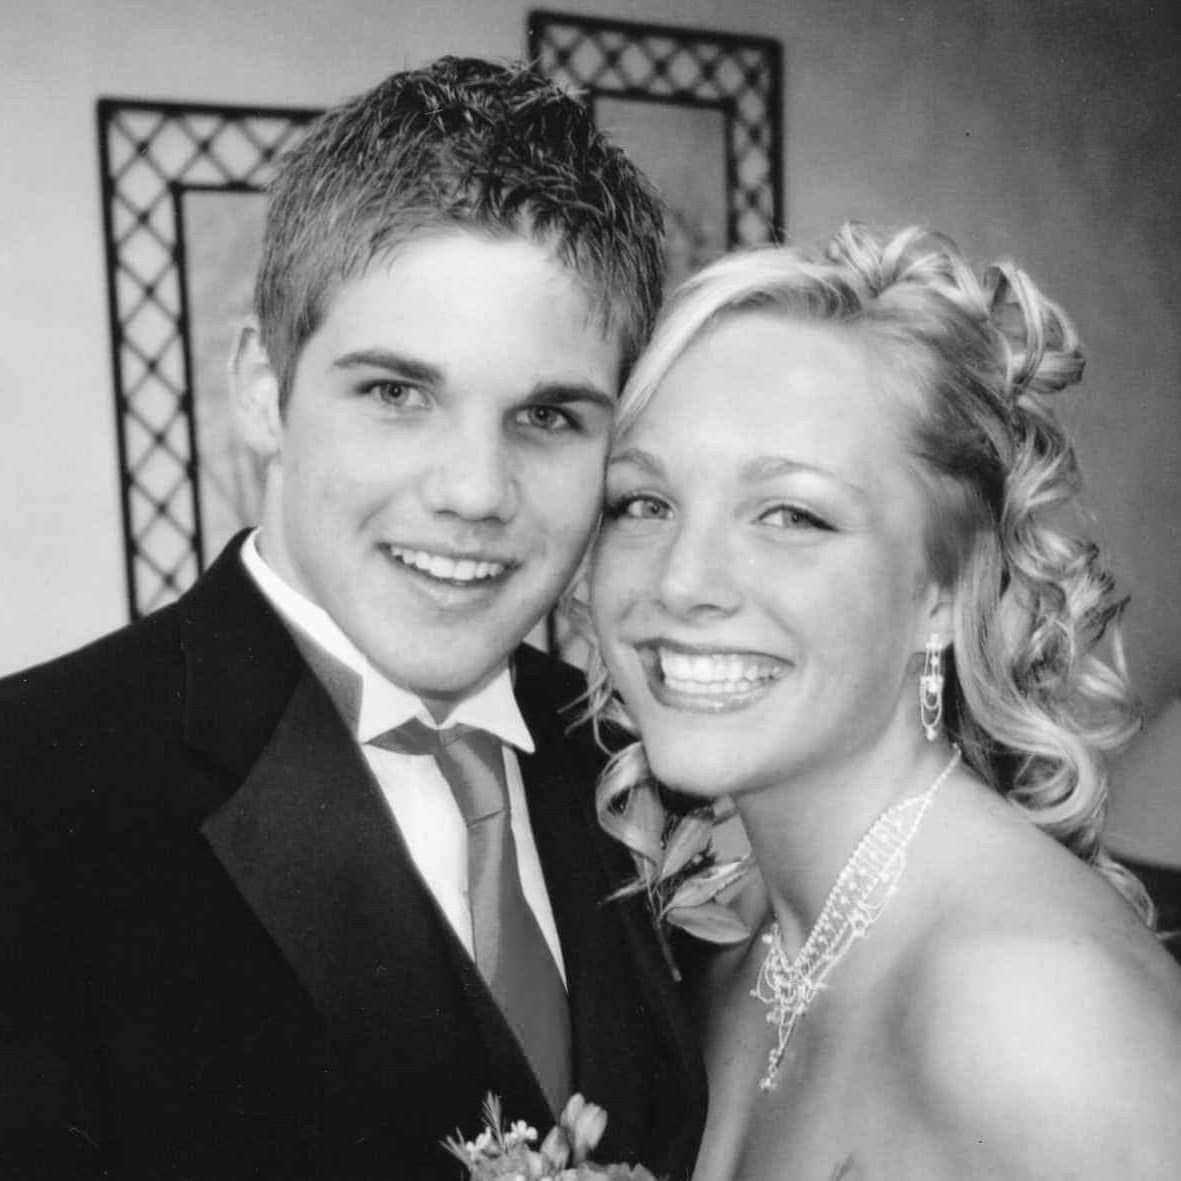 Casey and Finn prom 2004